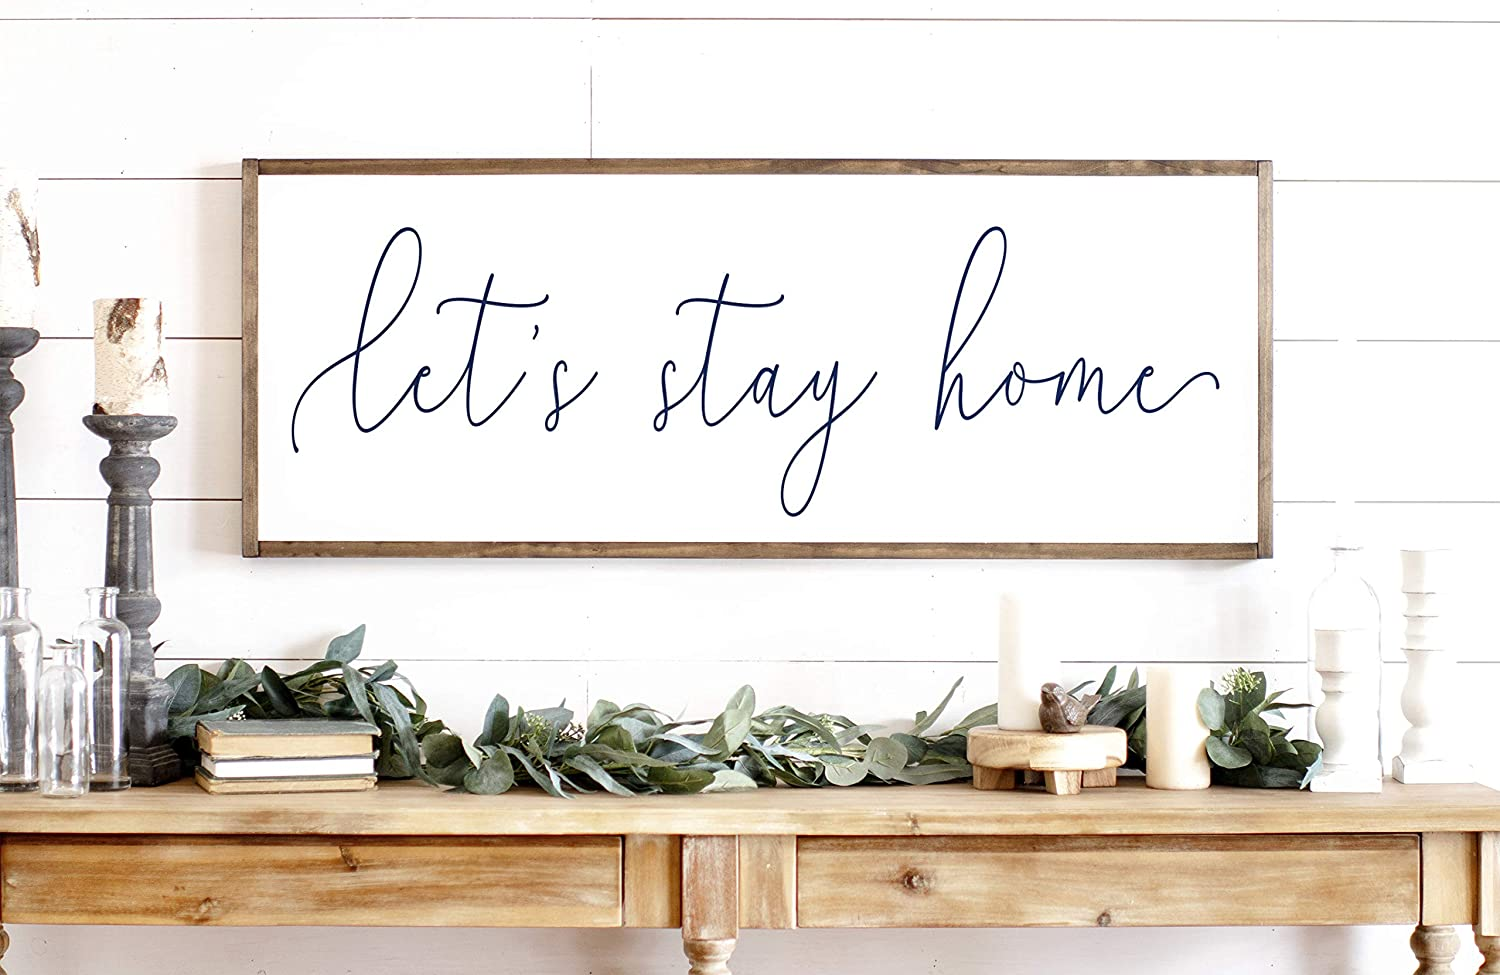 Bedroom Sign You are My Home Quote Large Wood Sign Farmhouse Decor Rustic Wood Signs Farmhouse Signs Modern Farmhouse Signs prz0vprz0v Framed Wood Sign